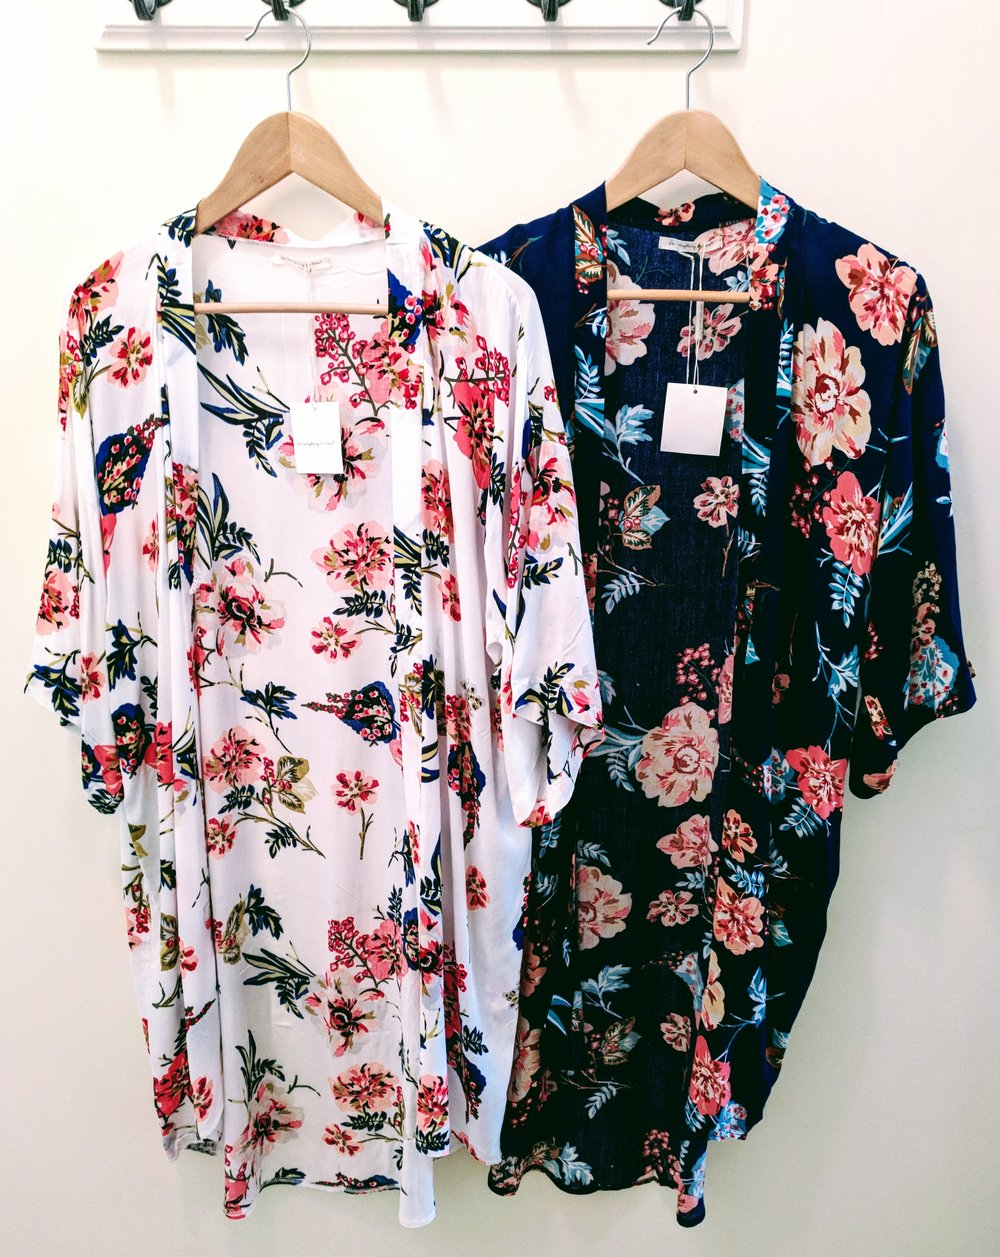 White and Navy floral print long kimono.